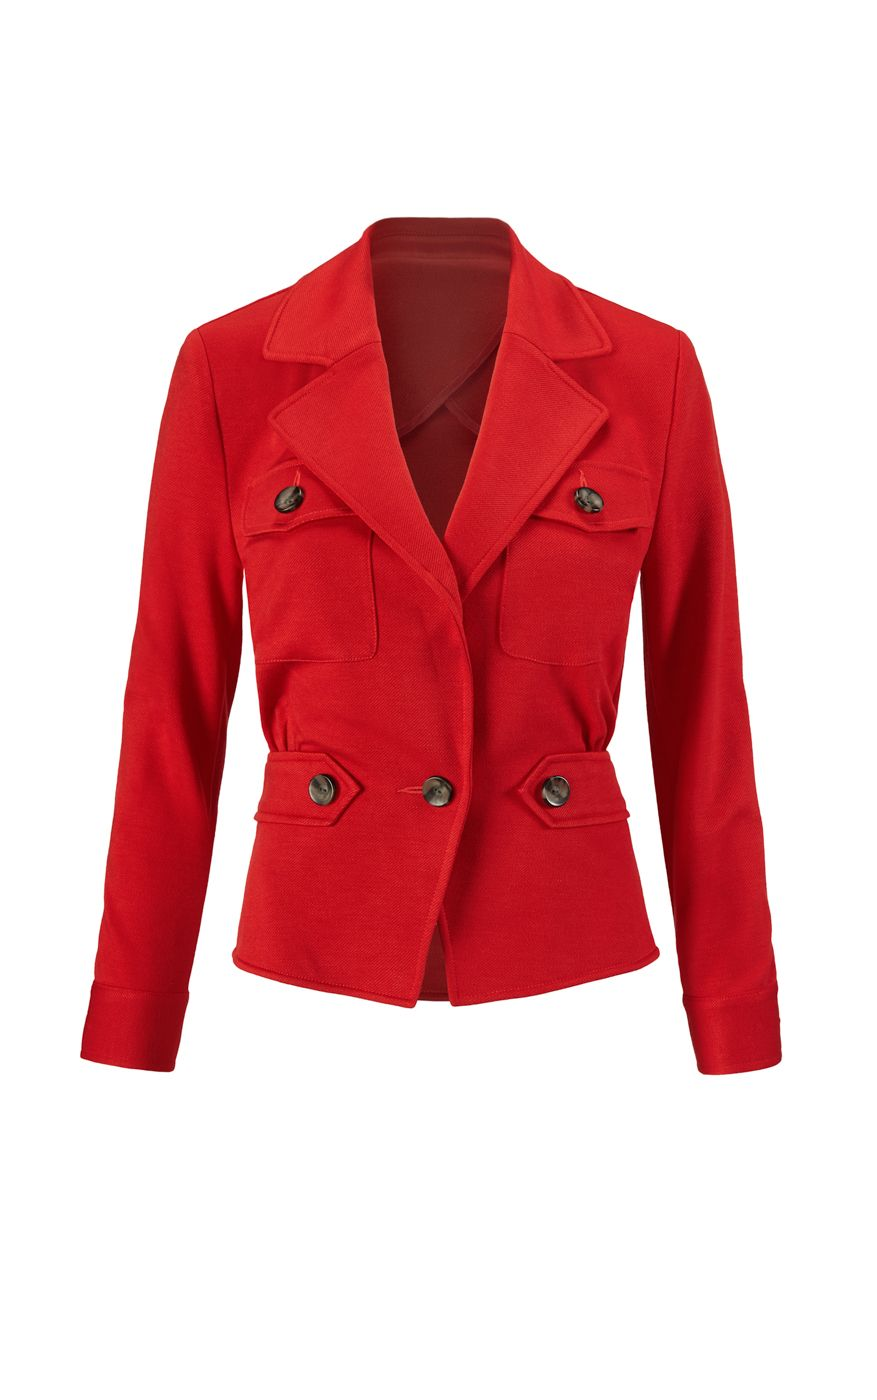 dc5f6864a1976 Heather, this is the little red jacket I mentioned... that I just got, and  want to have some items to style with it. Lynne. The LRJ - Cabi ...